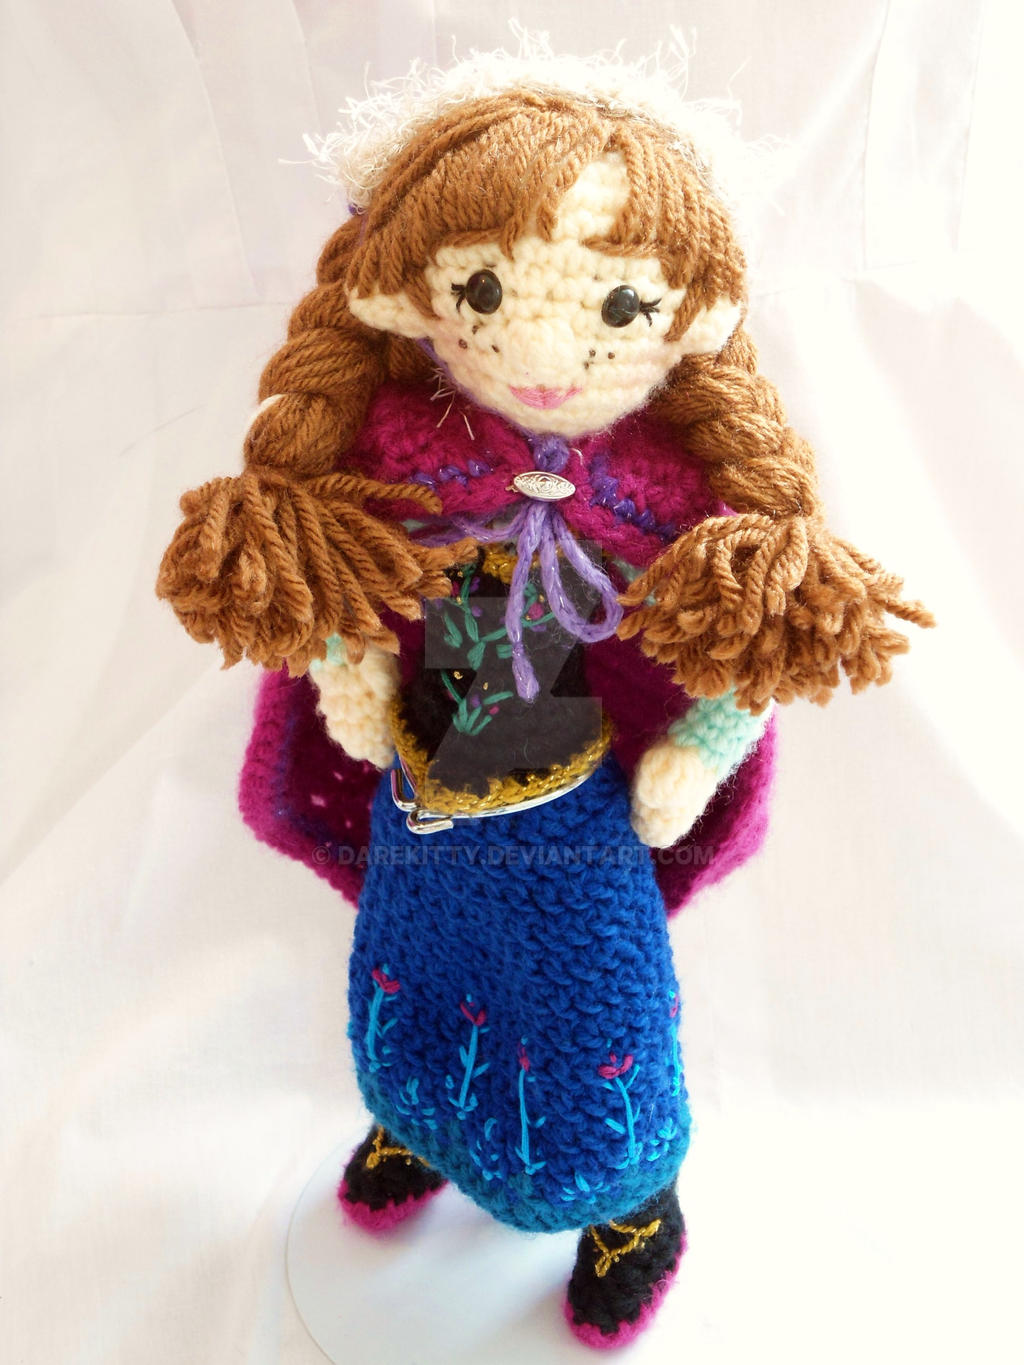 Amigurumi Elsa Ve Anna : Anna amigurumi by dareKITTY on DeviantArt